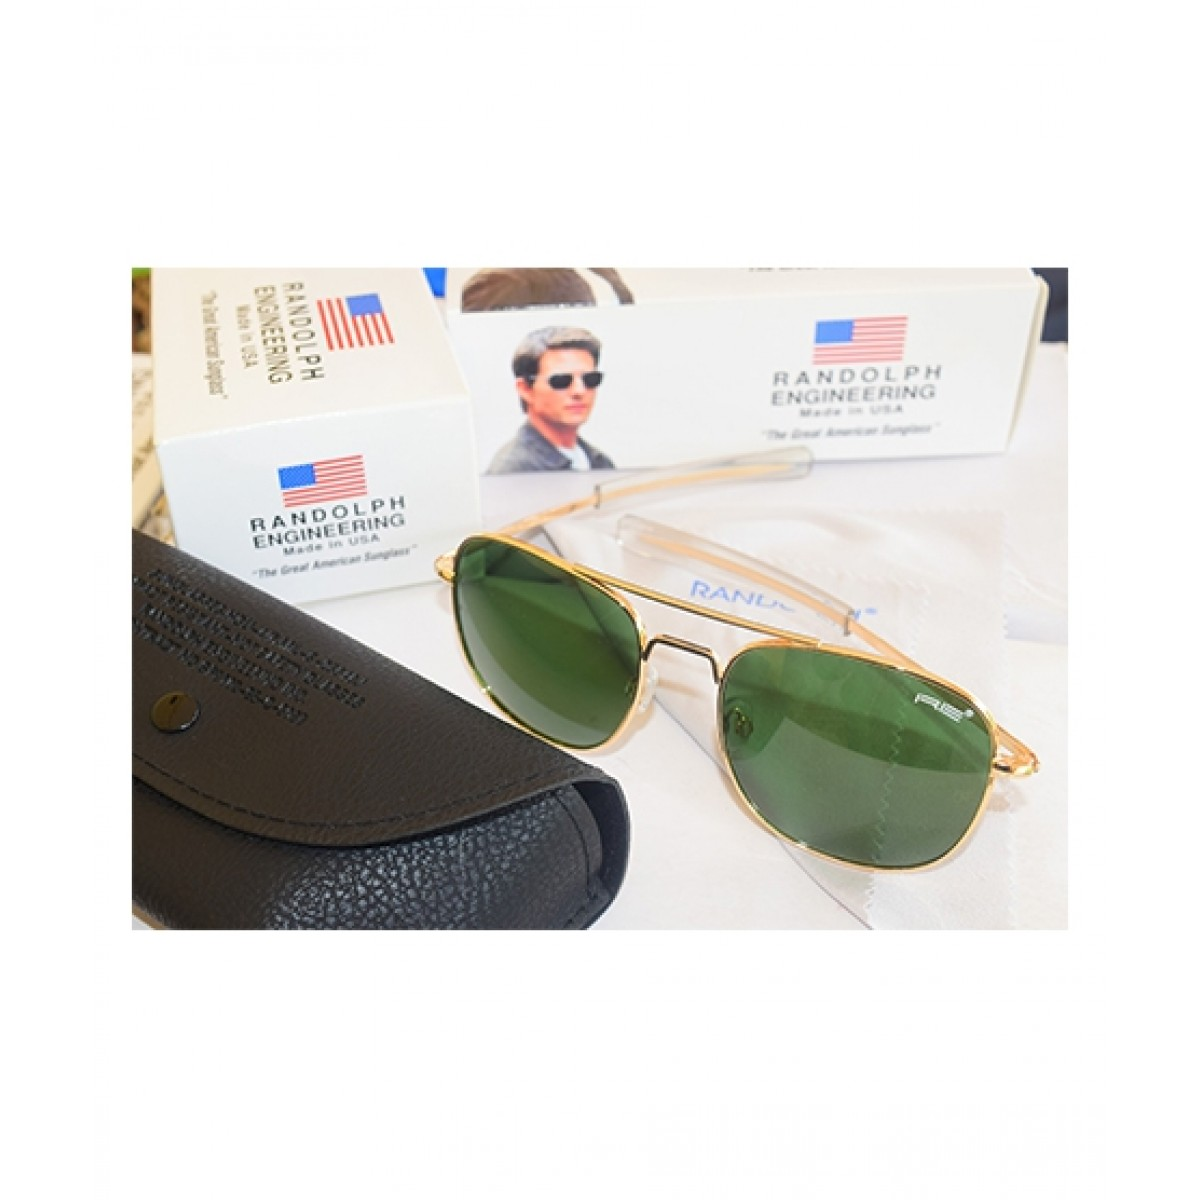 a3e496d6accbc Randolph Engineering Aviators Men s Sunglasses Price in Pakistan ...